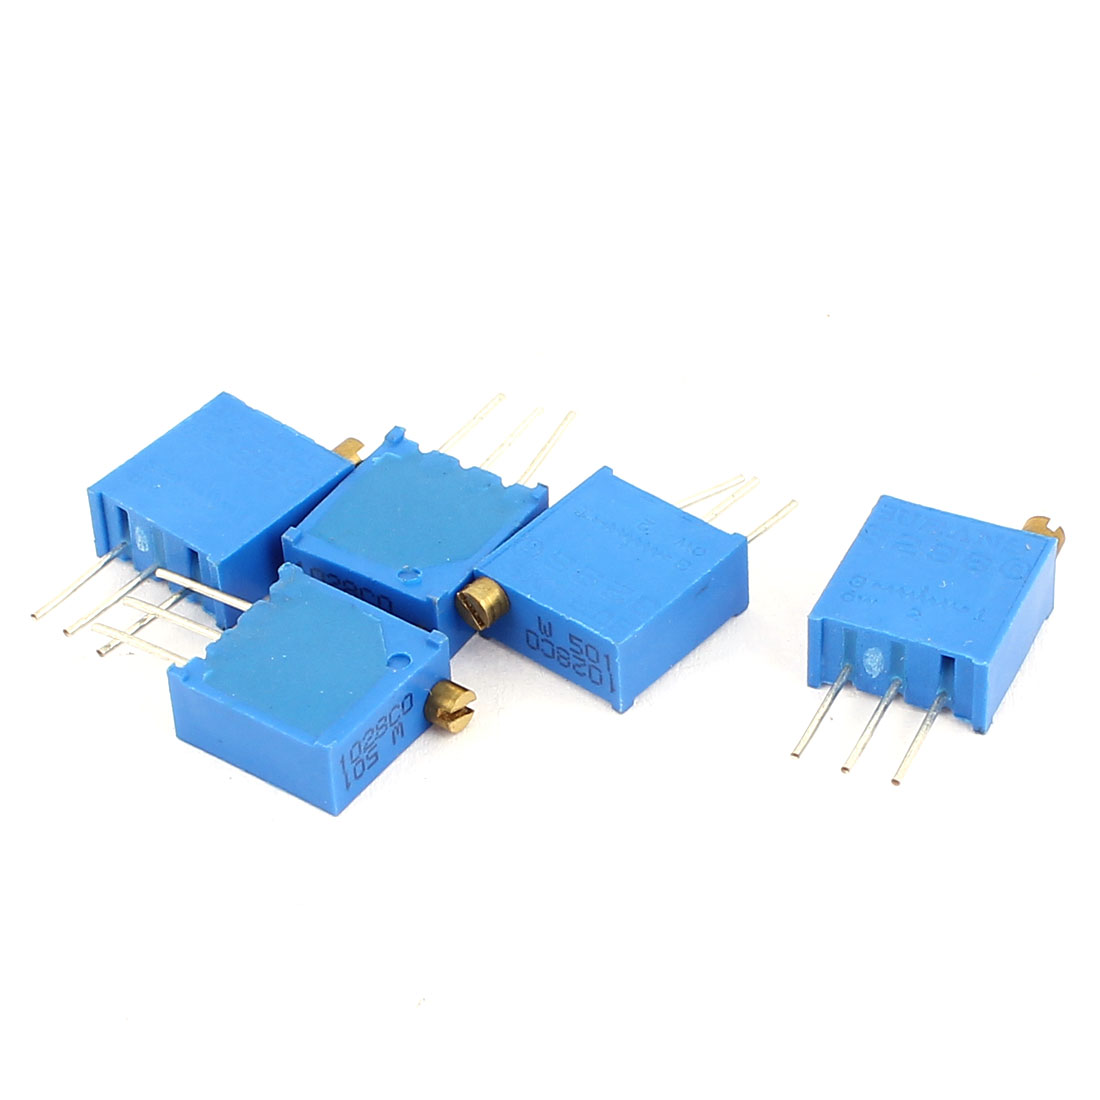 5 Pcs 3296W-501 500K Ohm Square Trimming Potentiometers